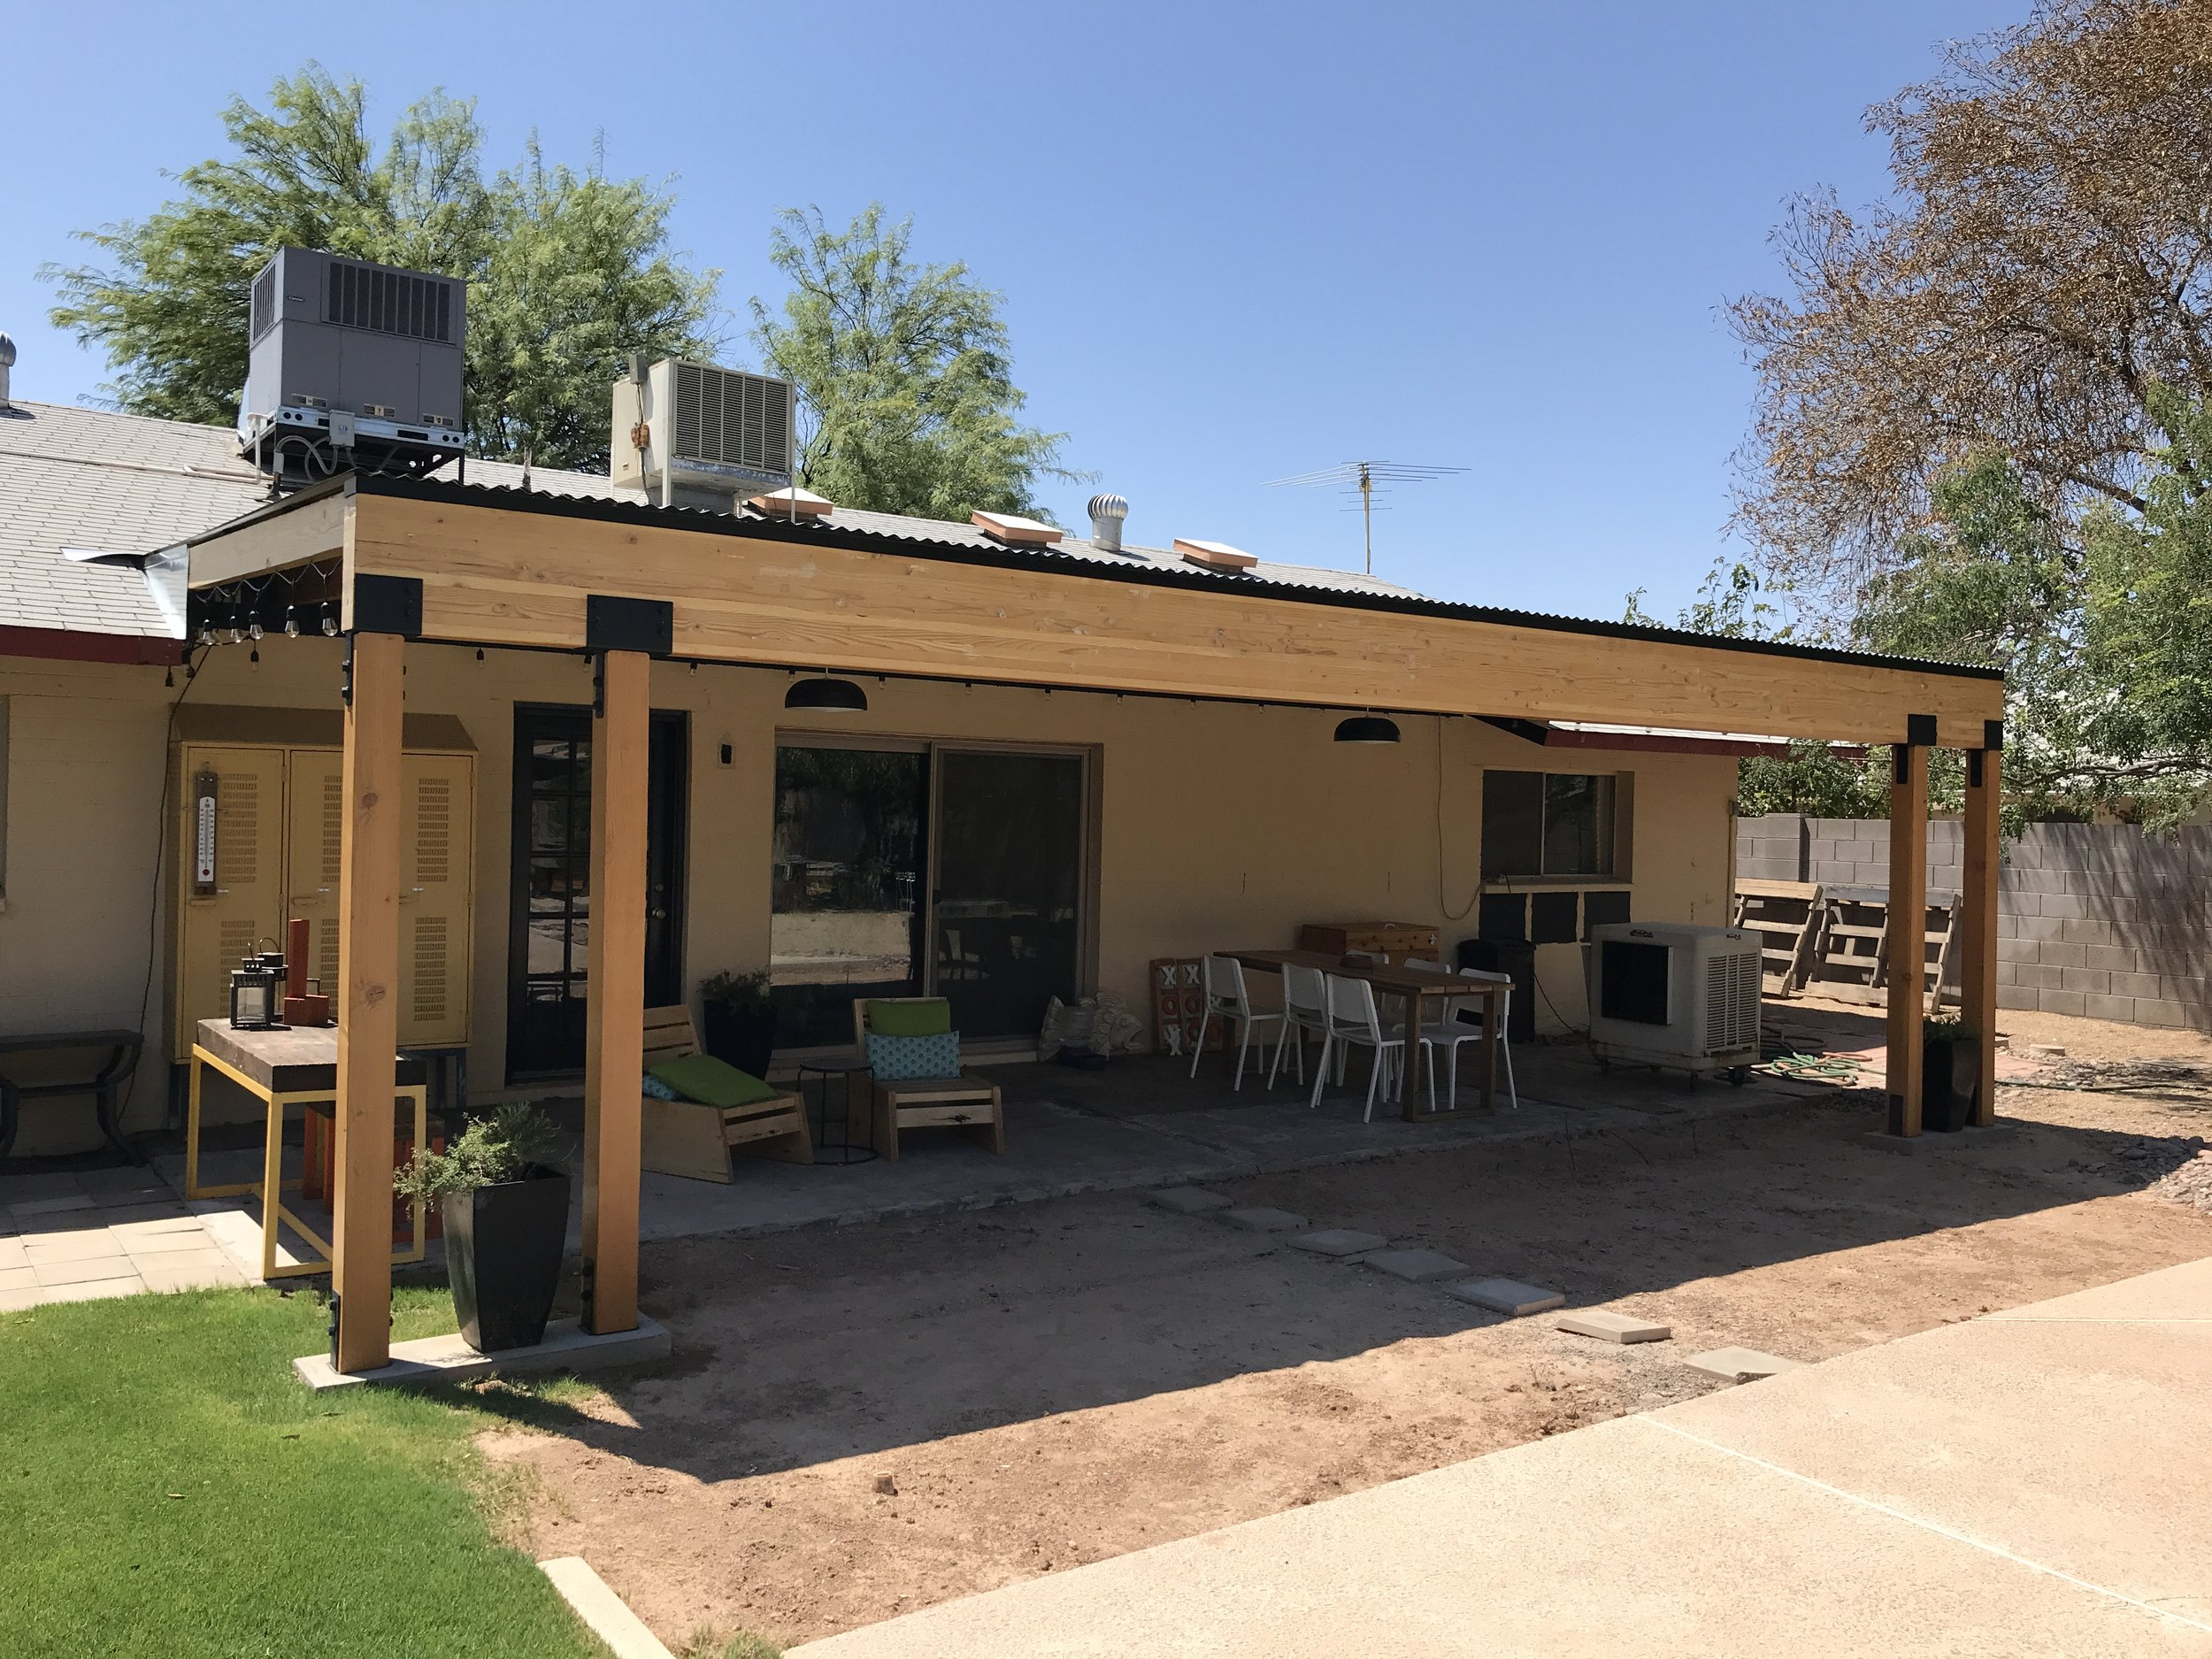 Building A Covered Patio With A 30ft Span The Awesome Orange